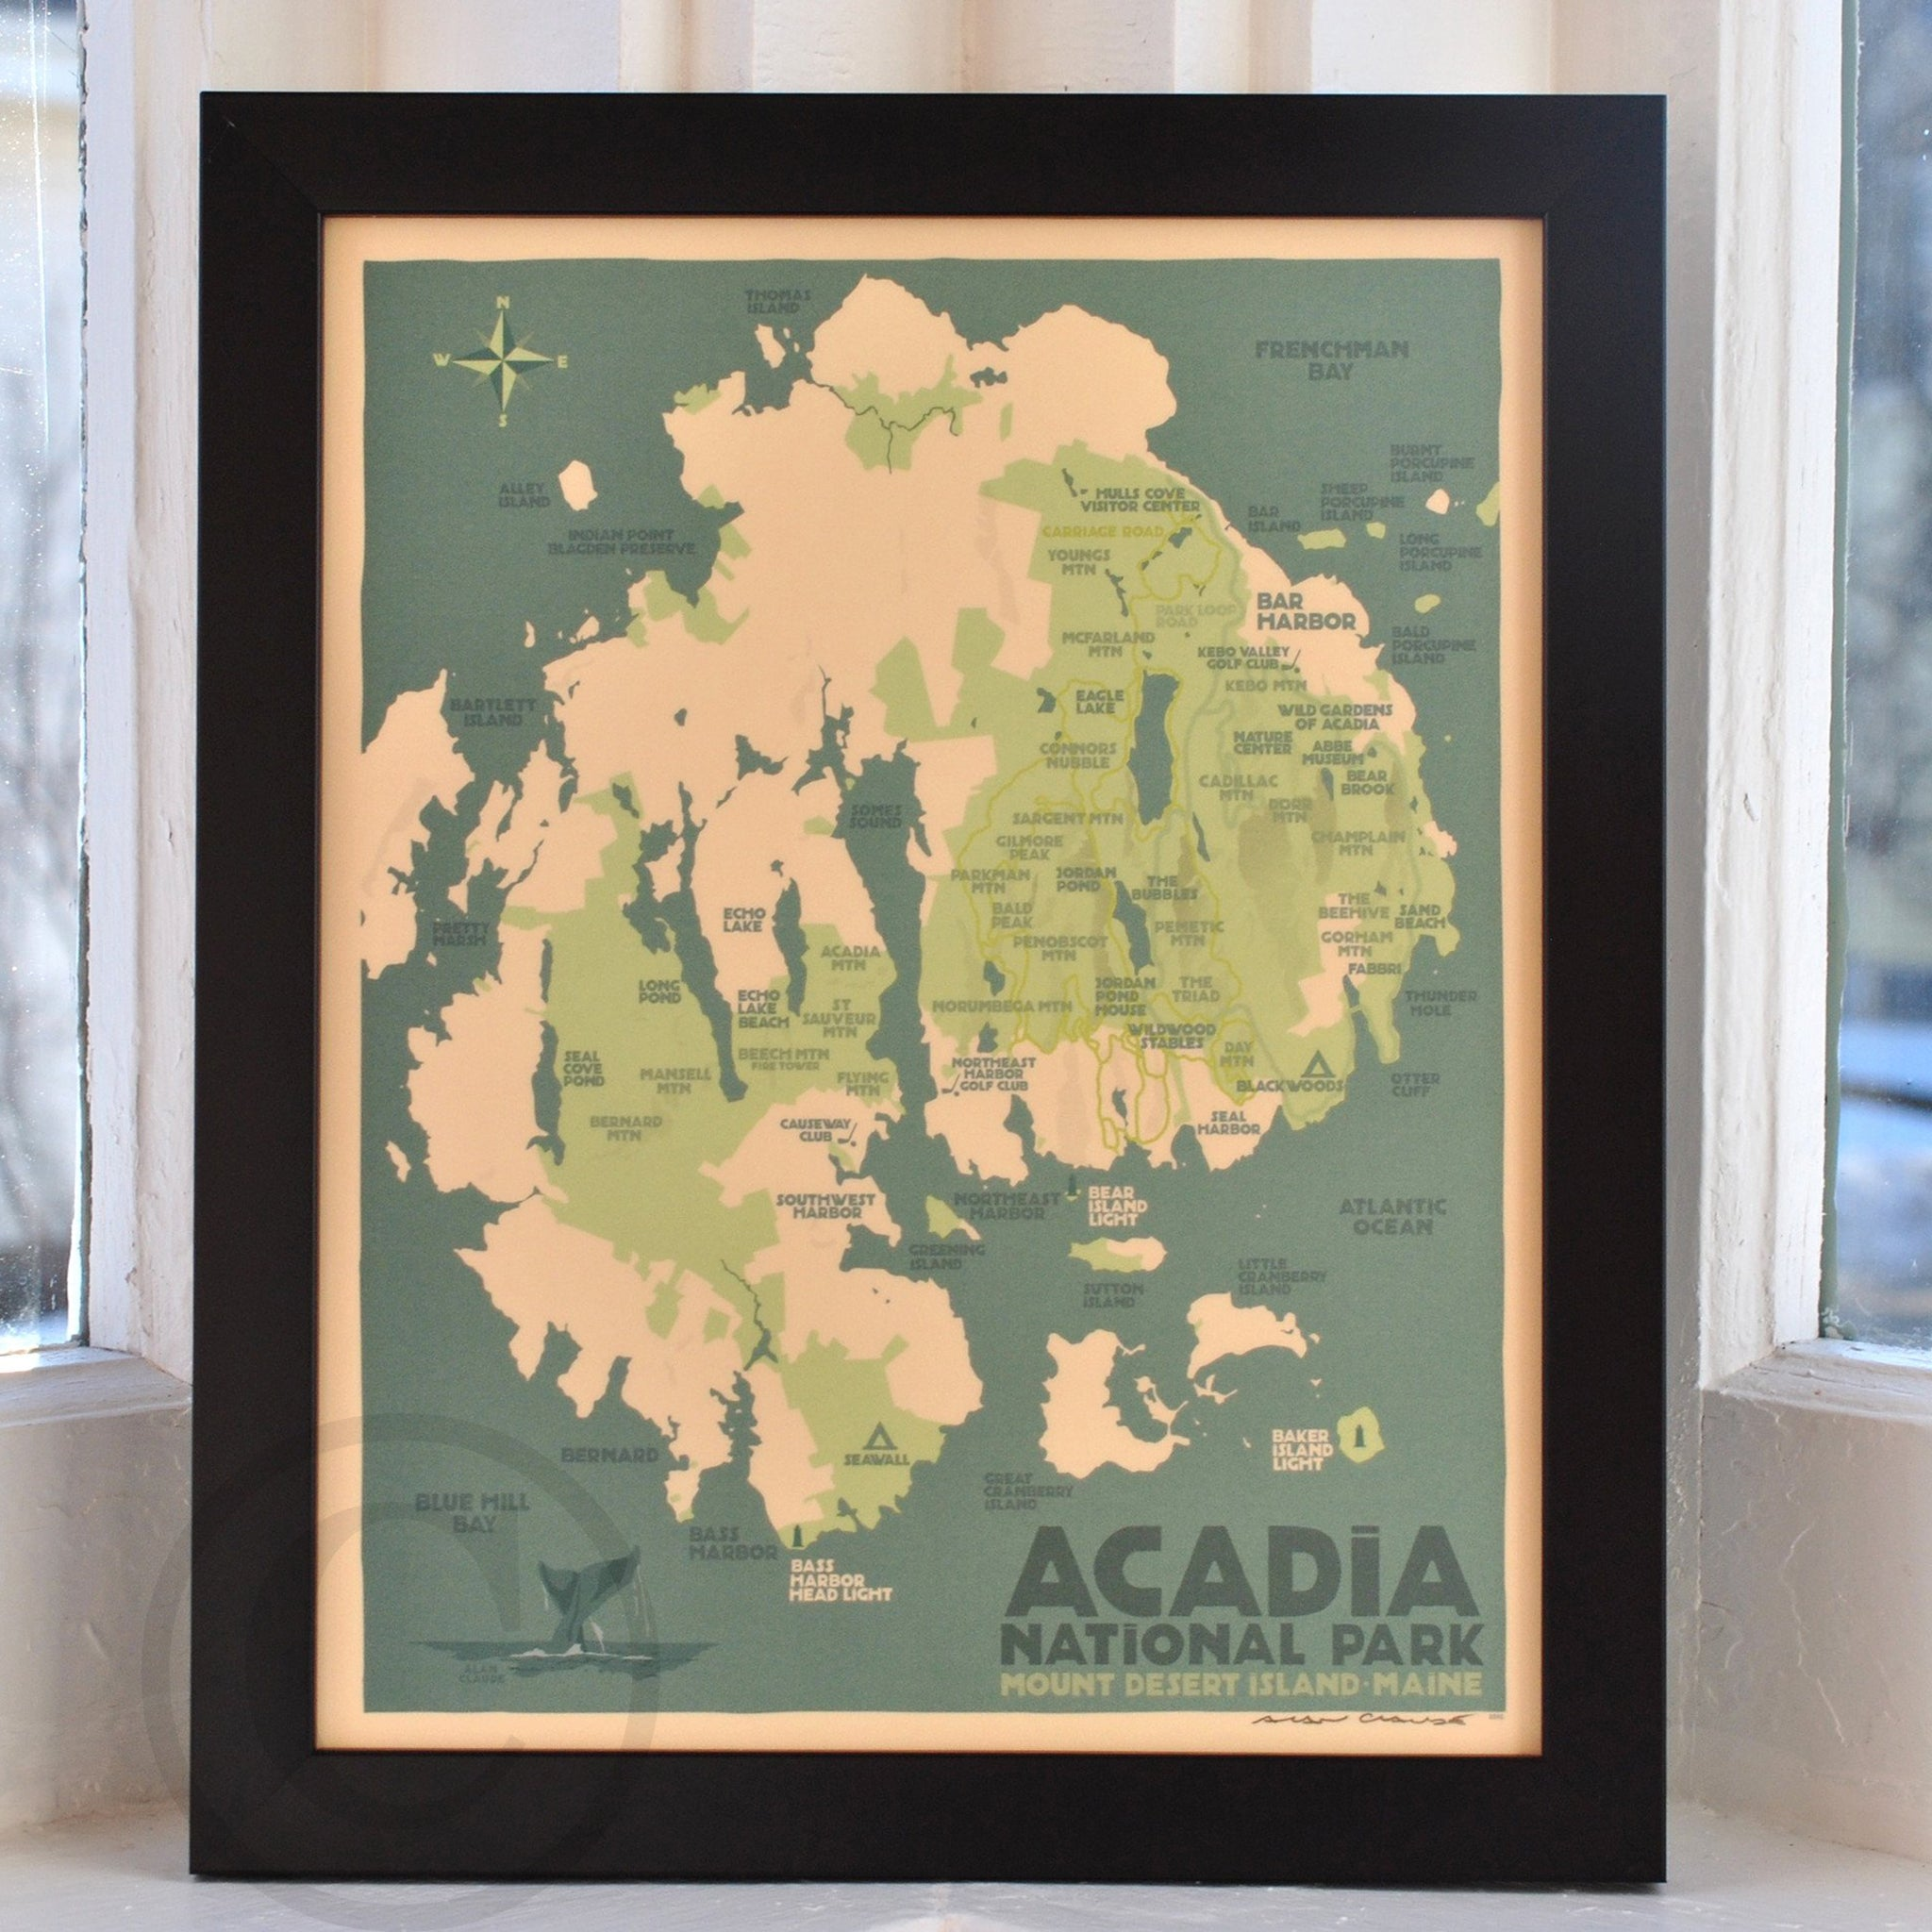 Watch How to Mount a Map or Poster Without Damaging It video